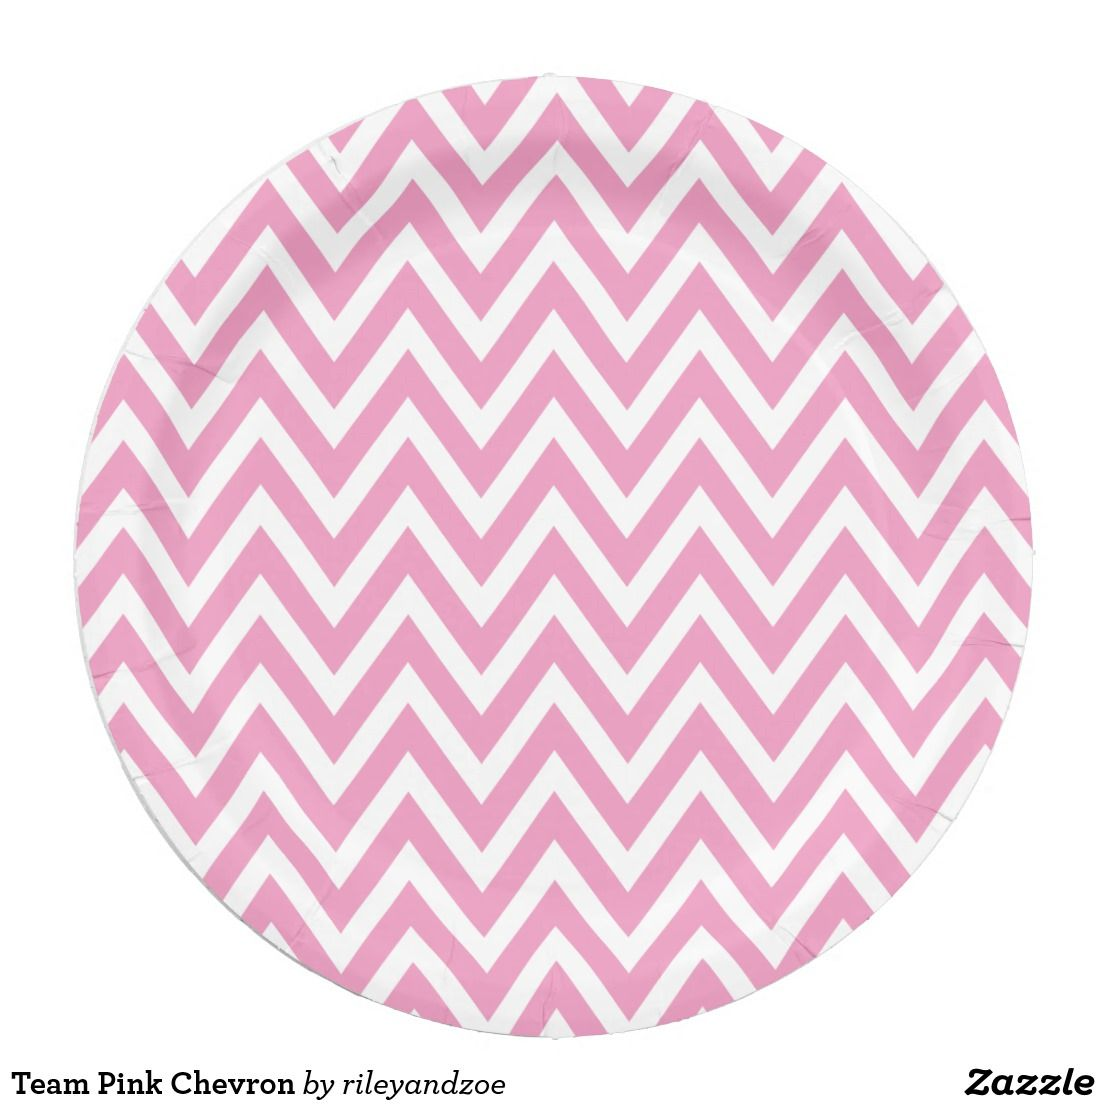 Team Pink Chevron Paper Plate Custom designed paper party plates with a chic preppy zigzag chevron  sc 1 st  Pinterest & Team Pink Chevron Paper Plate | Chevron paper